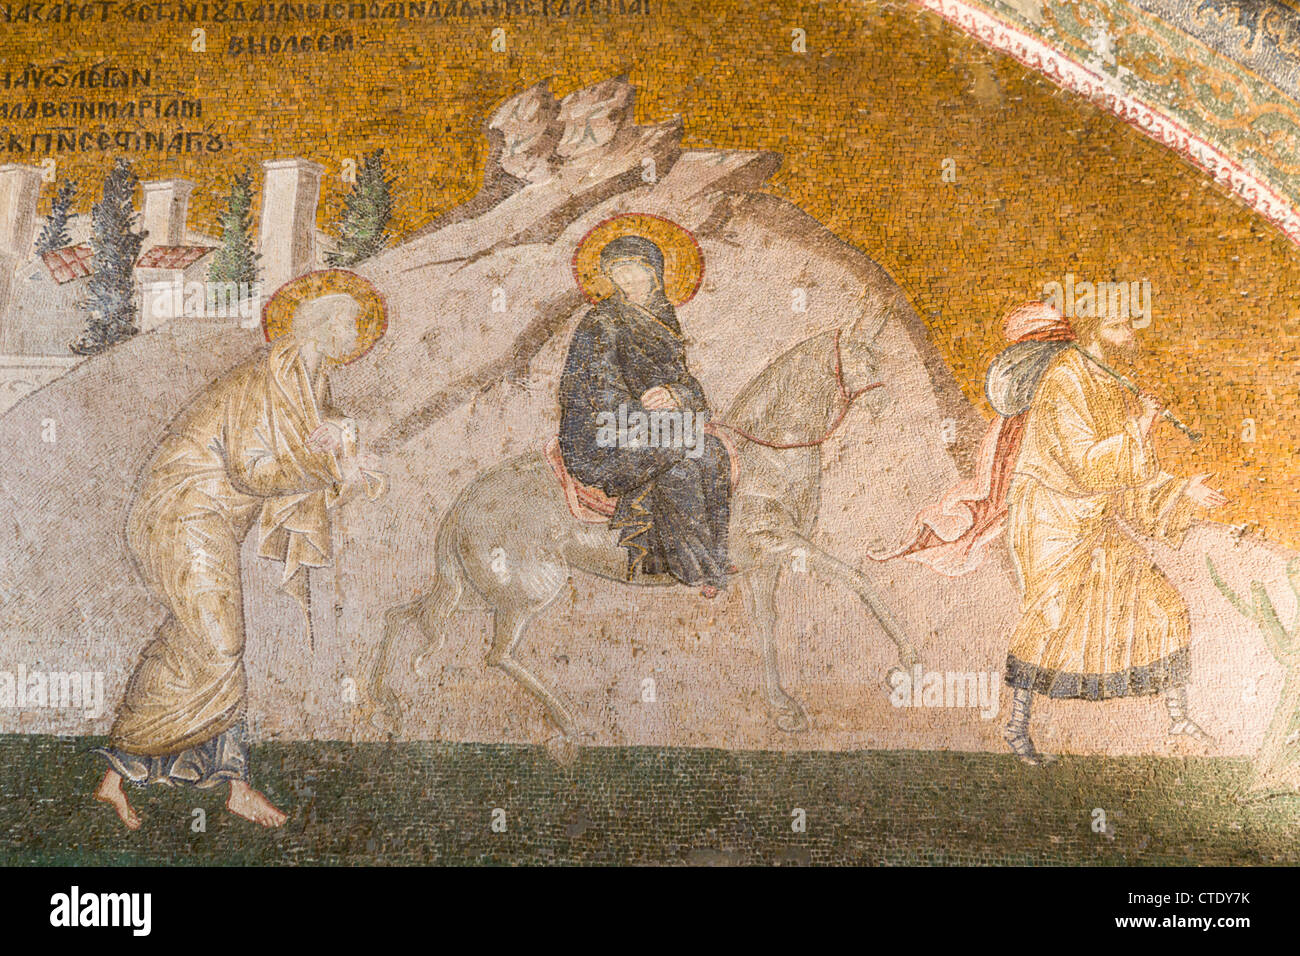 Istanbul, Turkey. Byzantine Church of St. Saviour in Chora. Mosaic of The Virgin Mary and Joseph on the journey - Stock Image